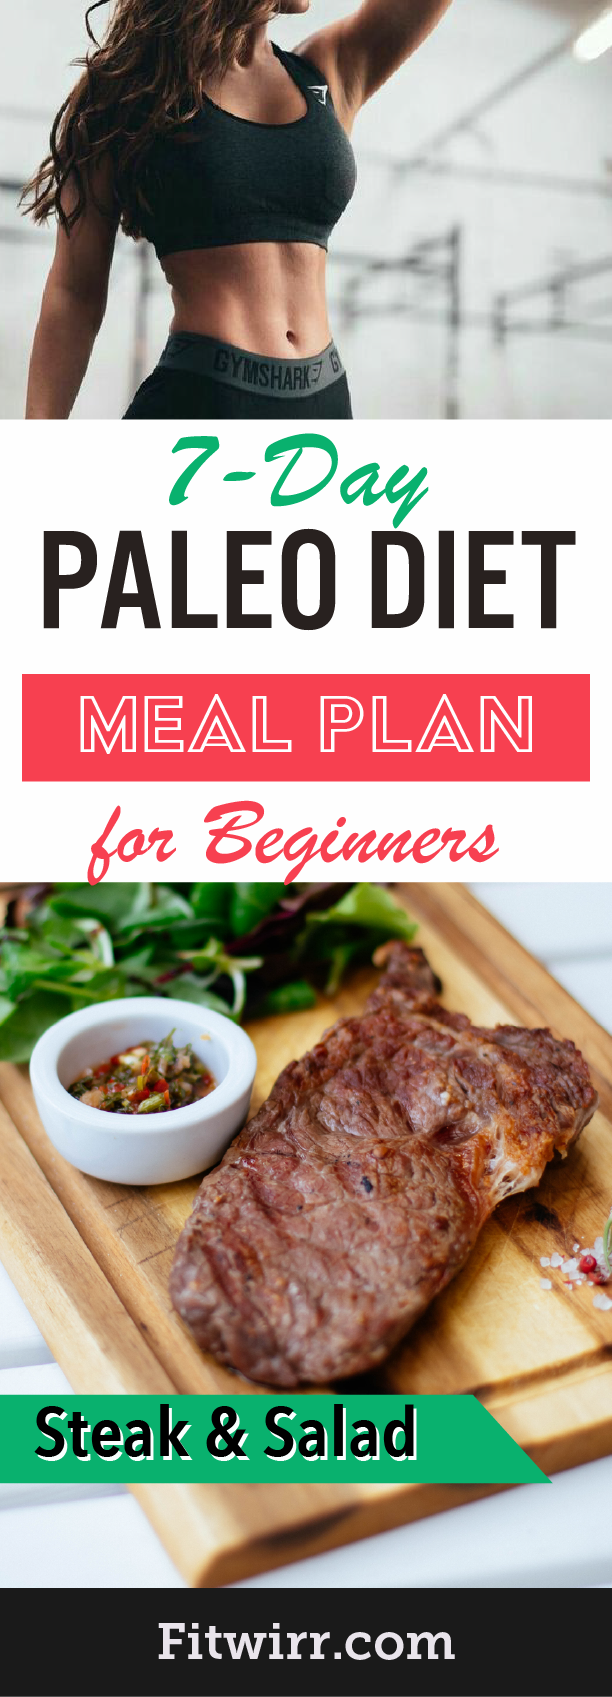 Paleo Diet Plan: A 7-Day Meal Plan to Lose Weight In a Week